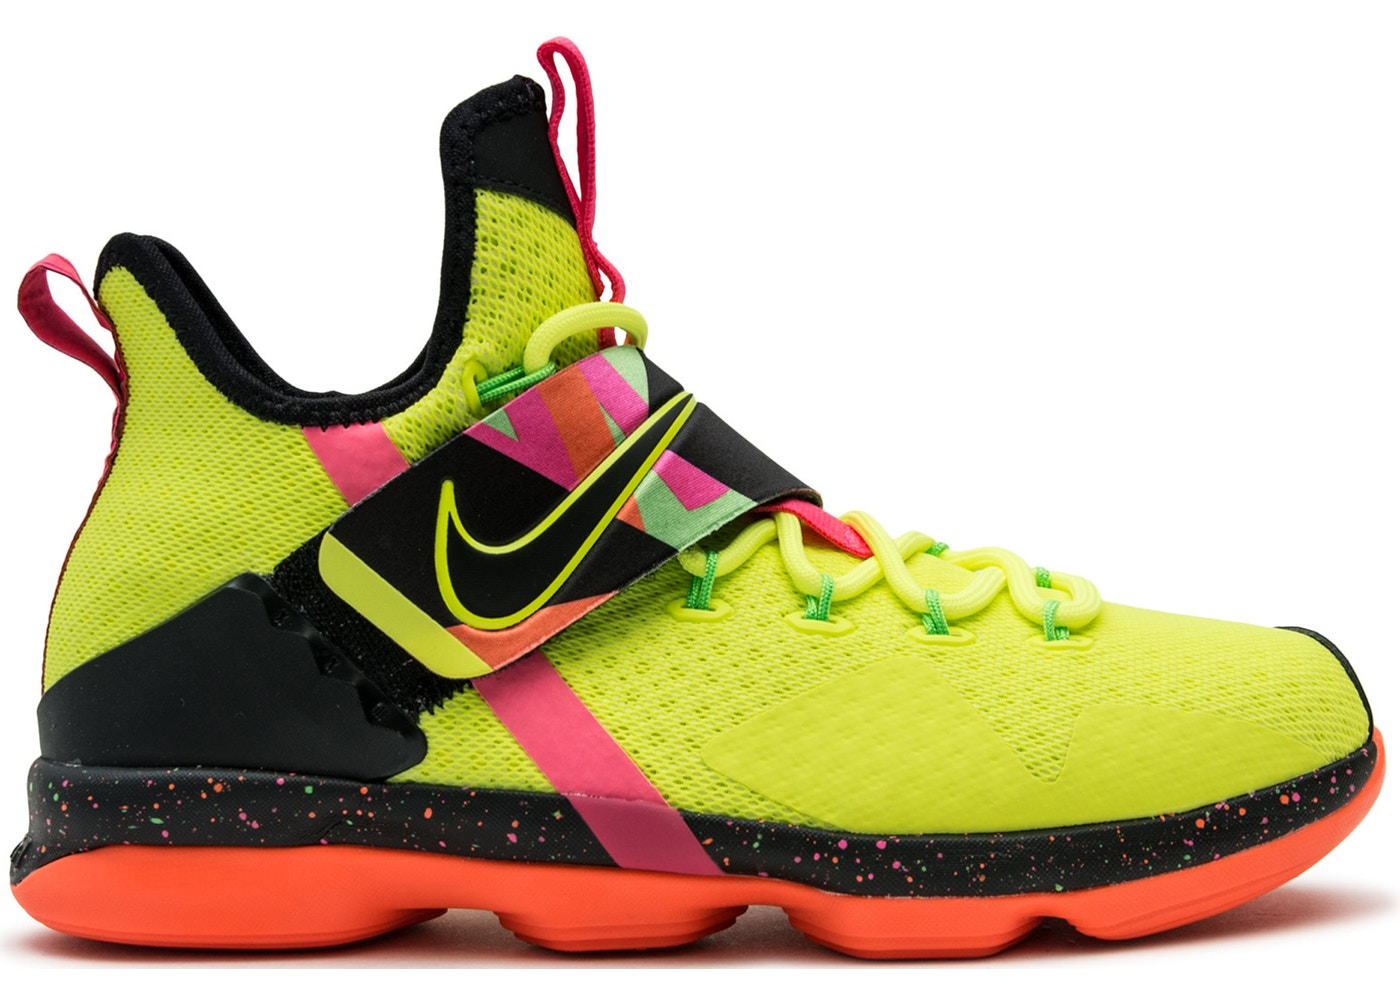 e32ded22ce536 LeBron 14 Ultimate Warrior (GS) - AA3258-703